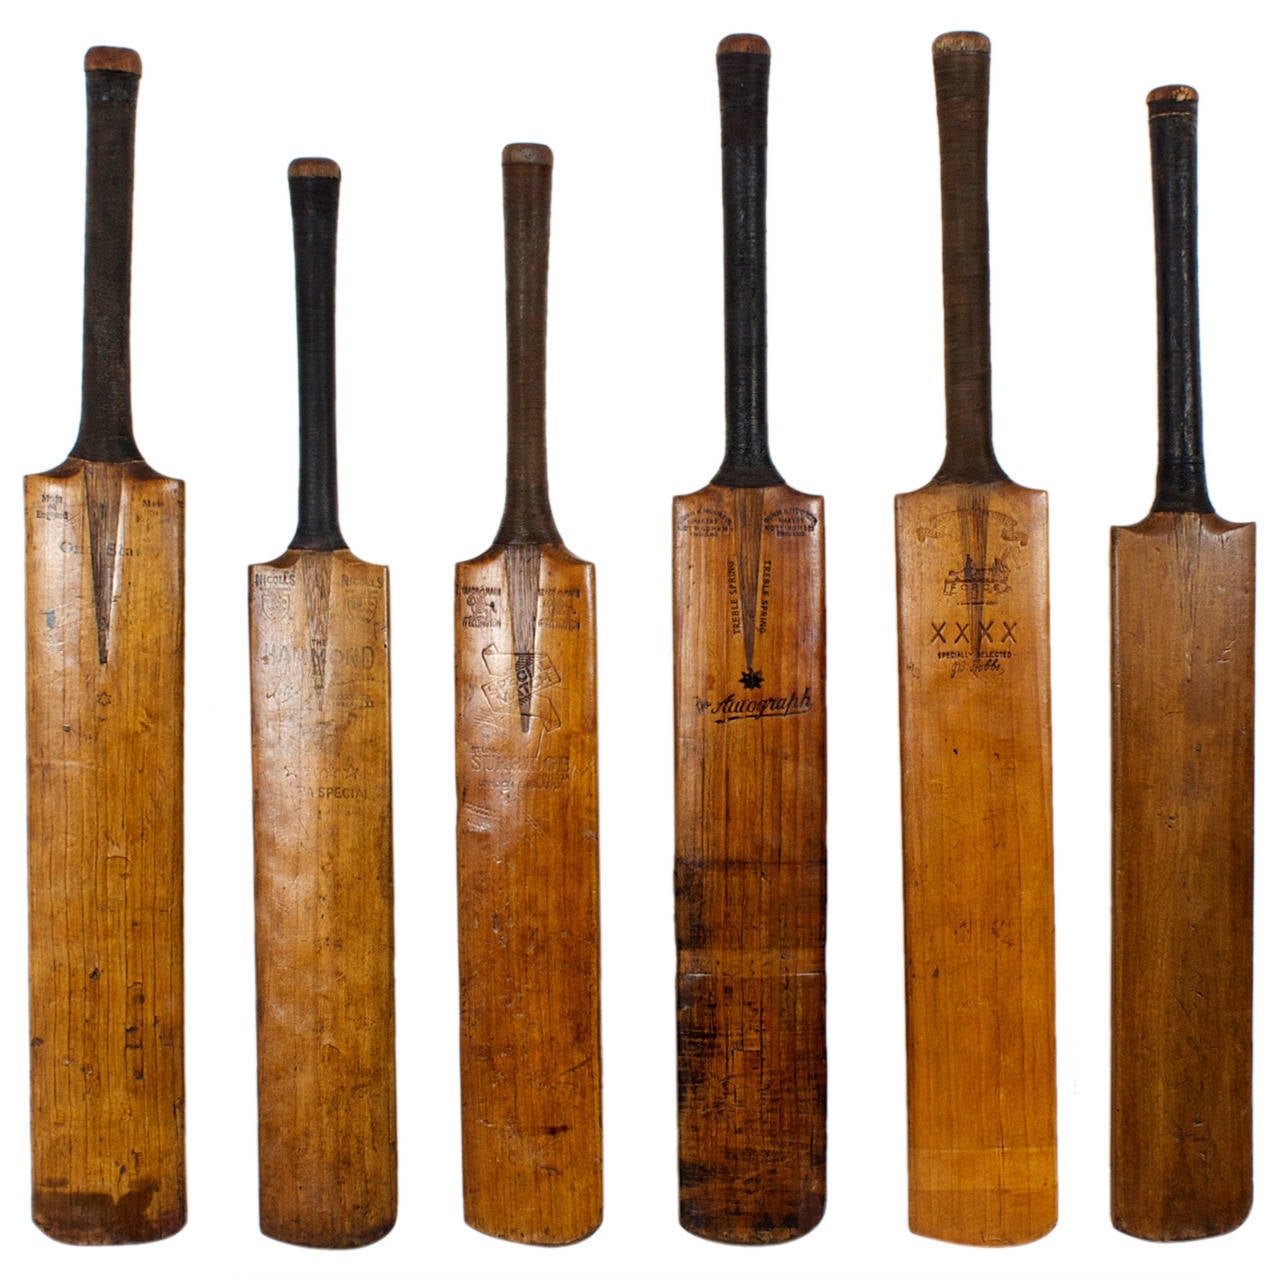 Collection of Fvie Cricket Bats, Great Color and Patina